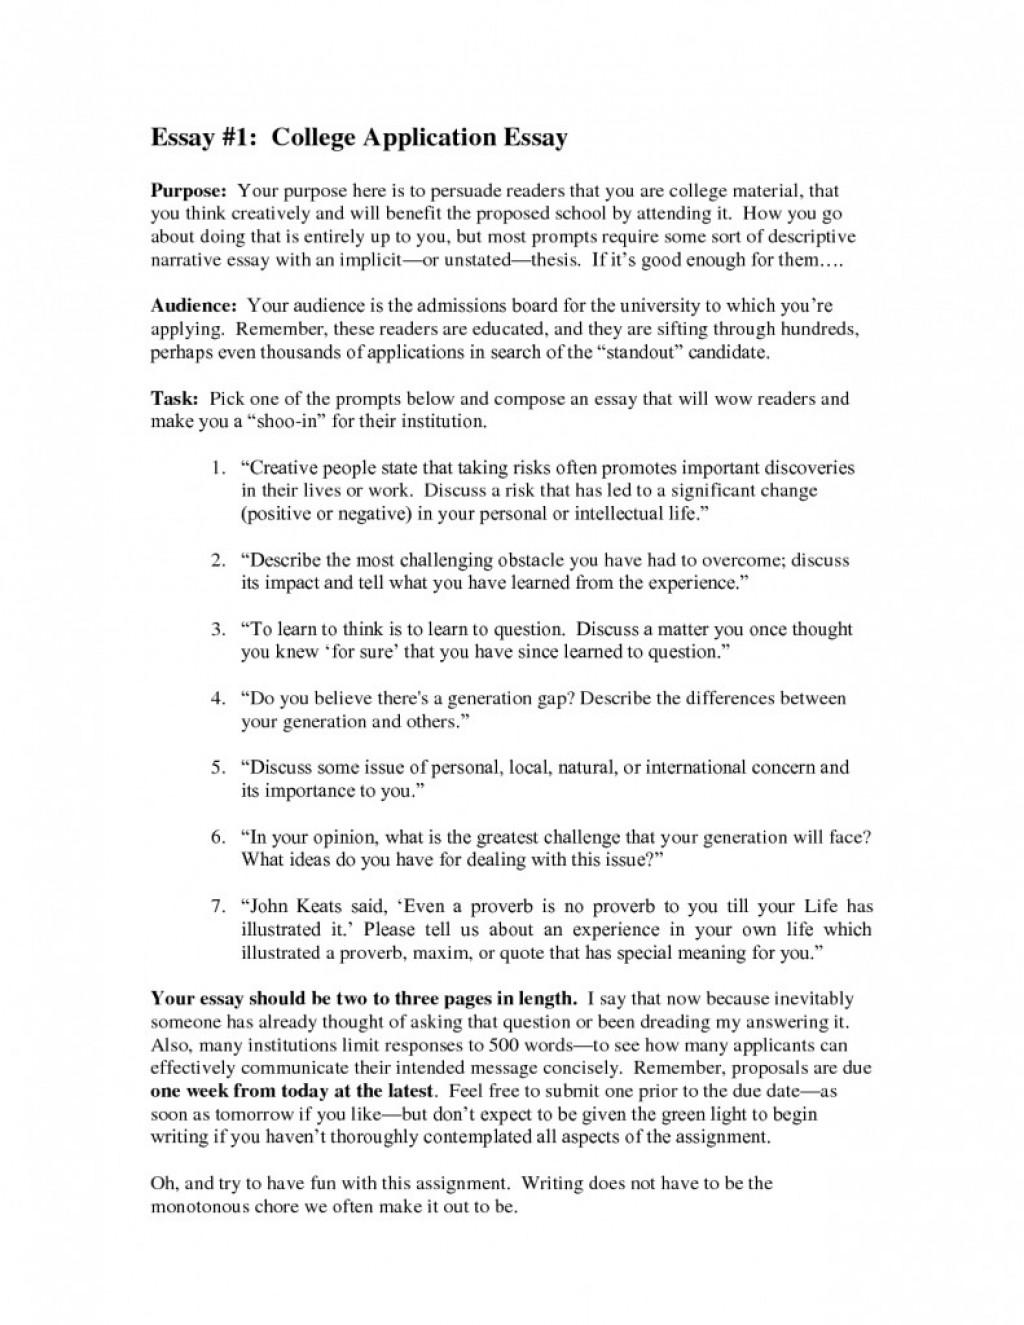 012 How To Write The Perfect College Application Essay 791x1024 Staggering A Good Nytimes Examples Large